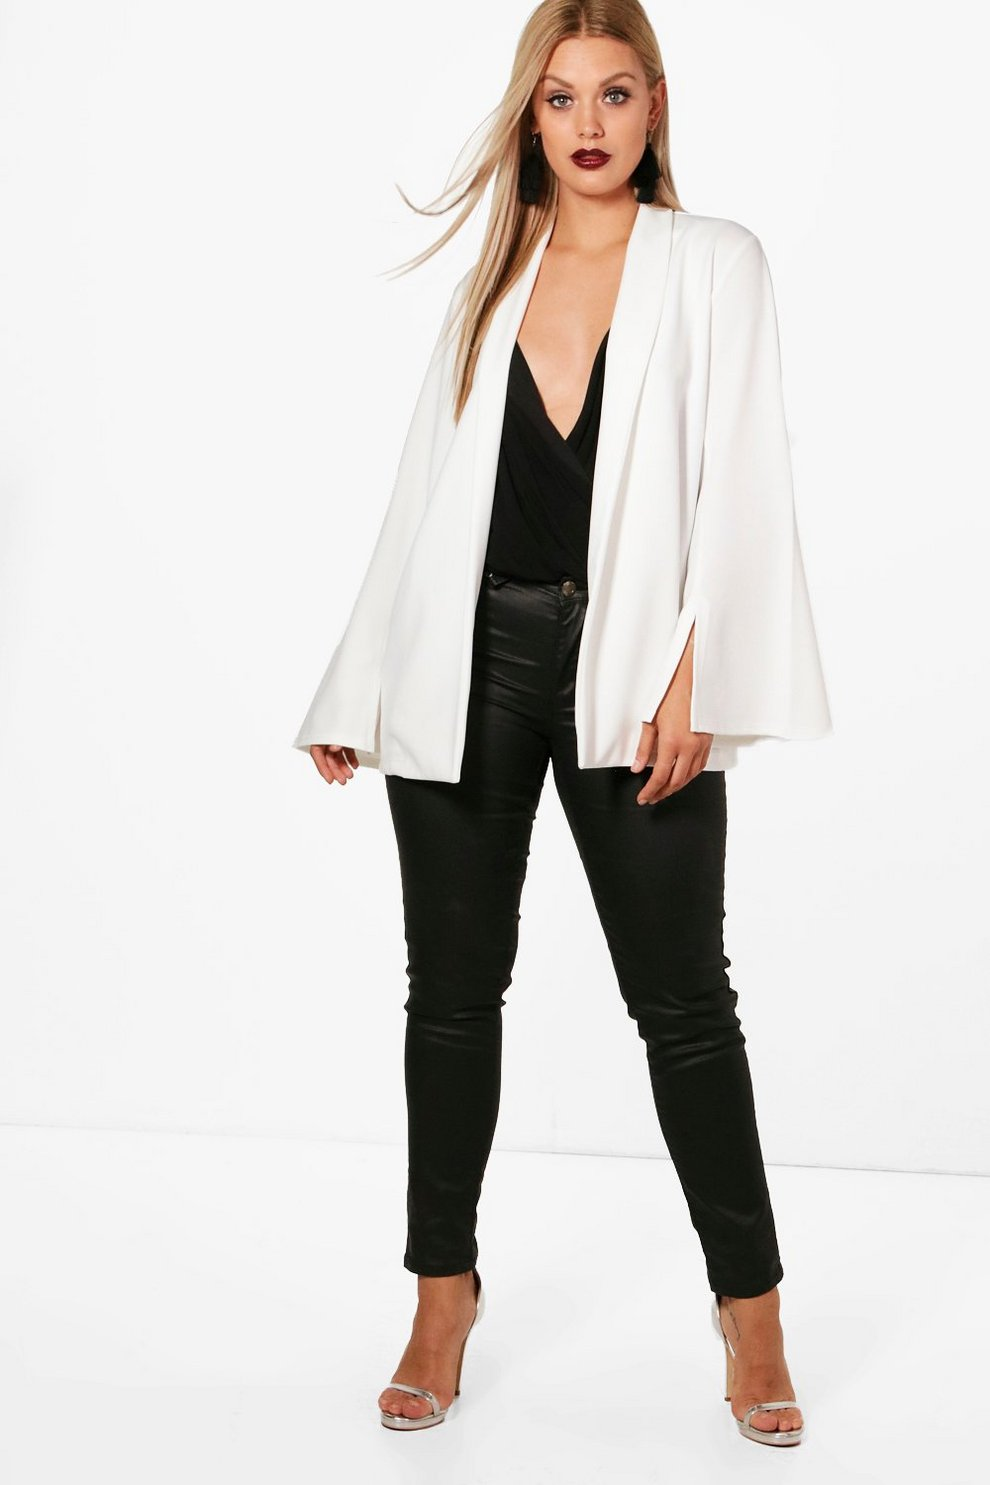 Boohoo Plus Tailored Wide Sleeve Blazer Free Shipping Get Authentic Extremely Sale Online Clearance Amazing Price Nicekicks Cheap Online Discount Shop For 9vhOrE6